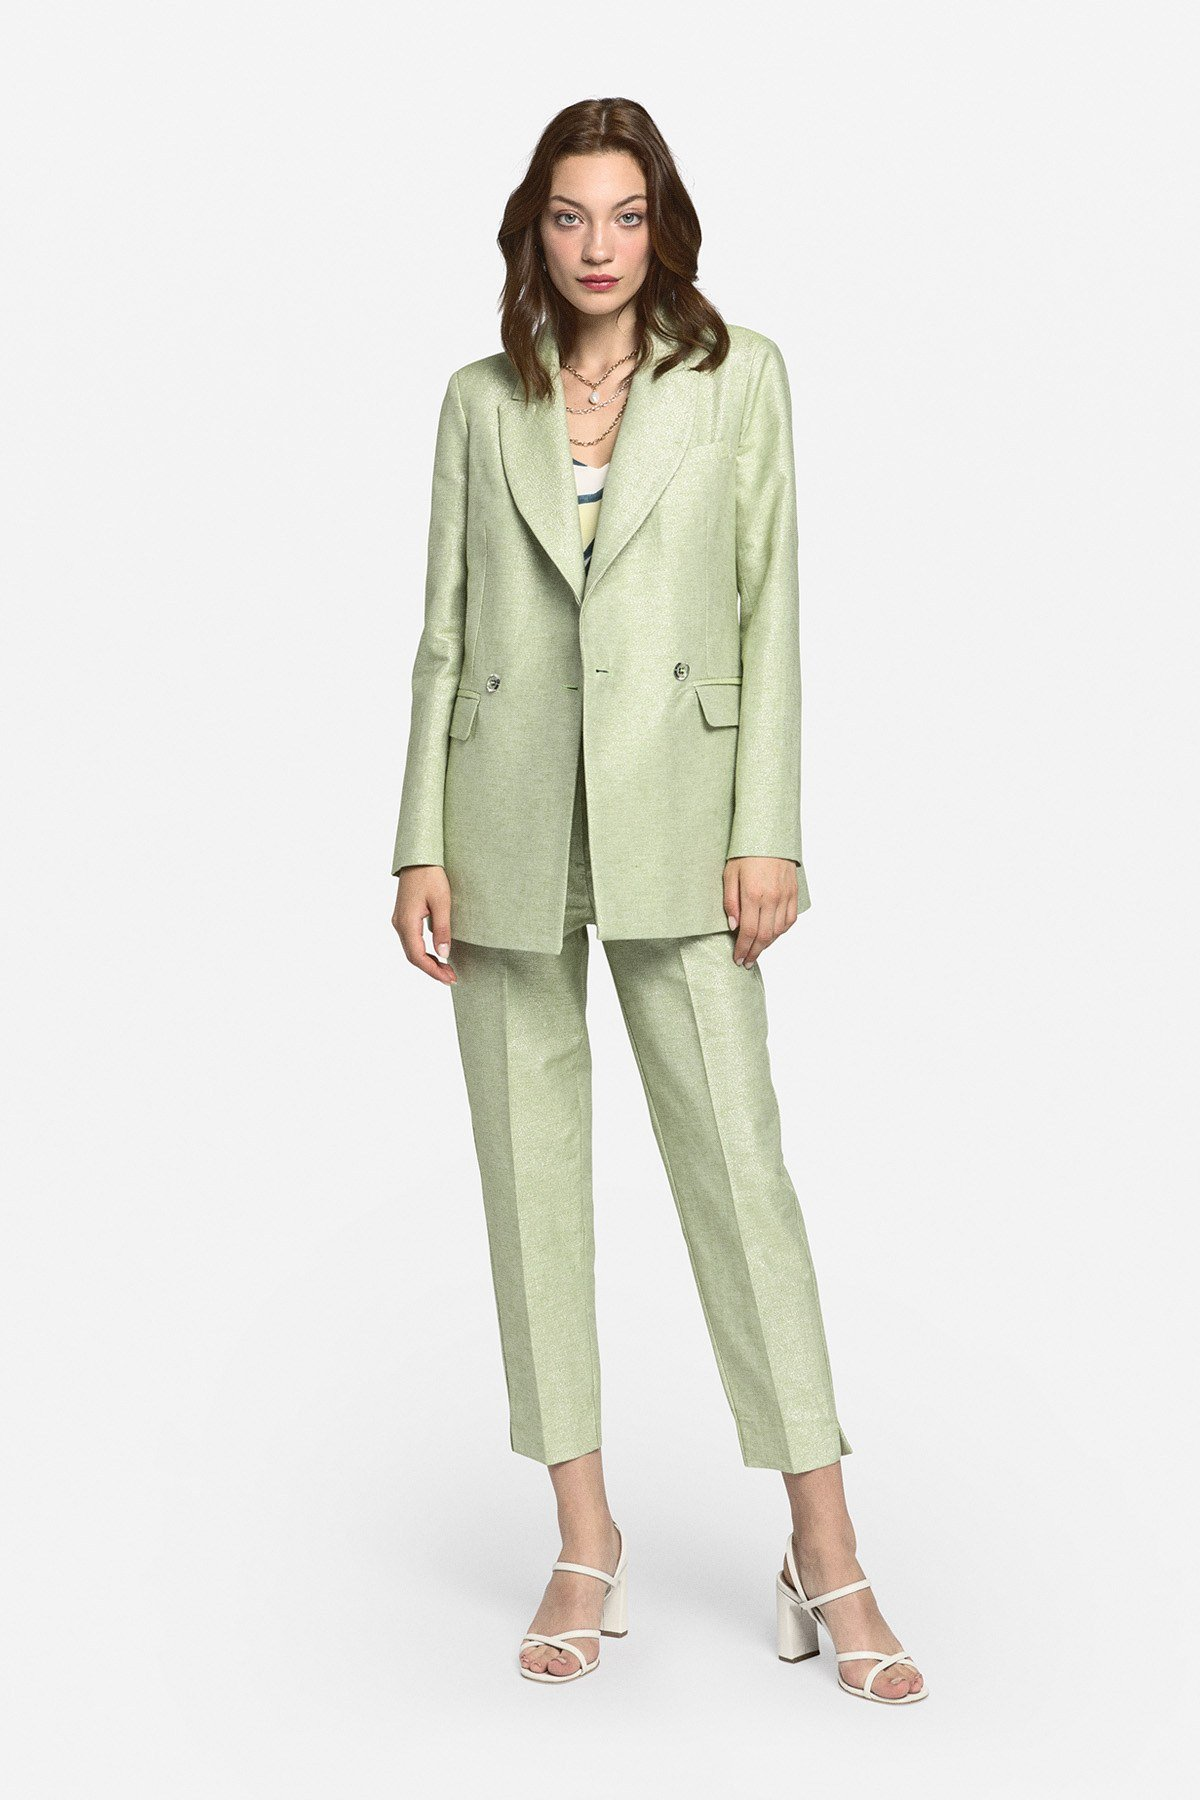 Linen blend double-breasted jacket